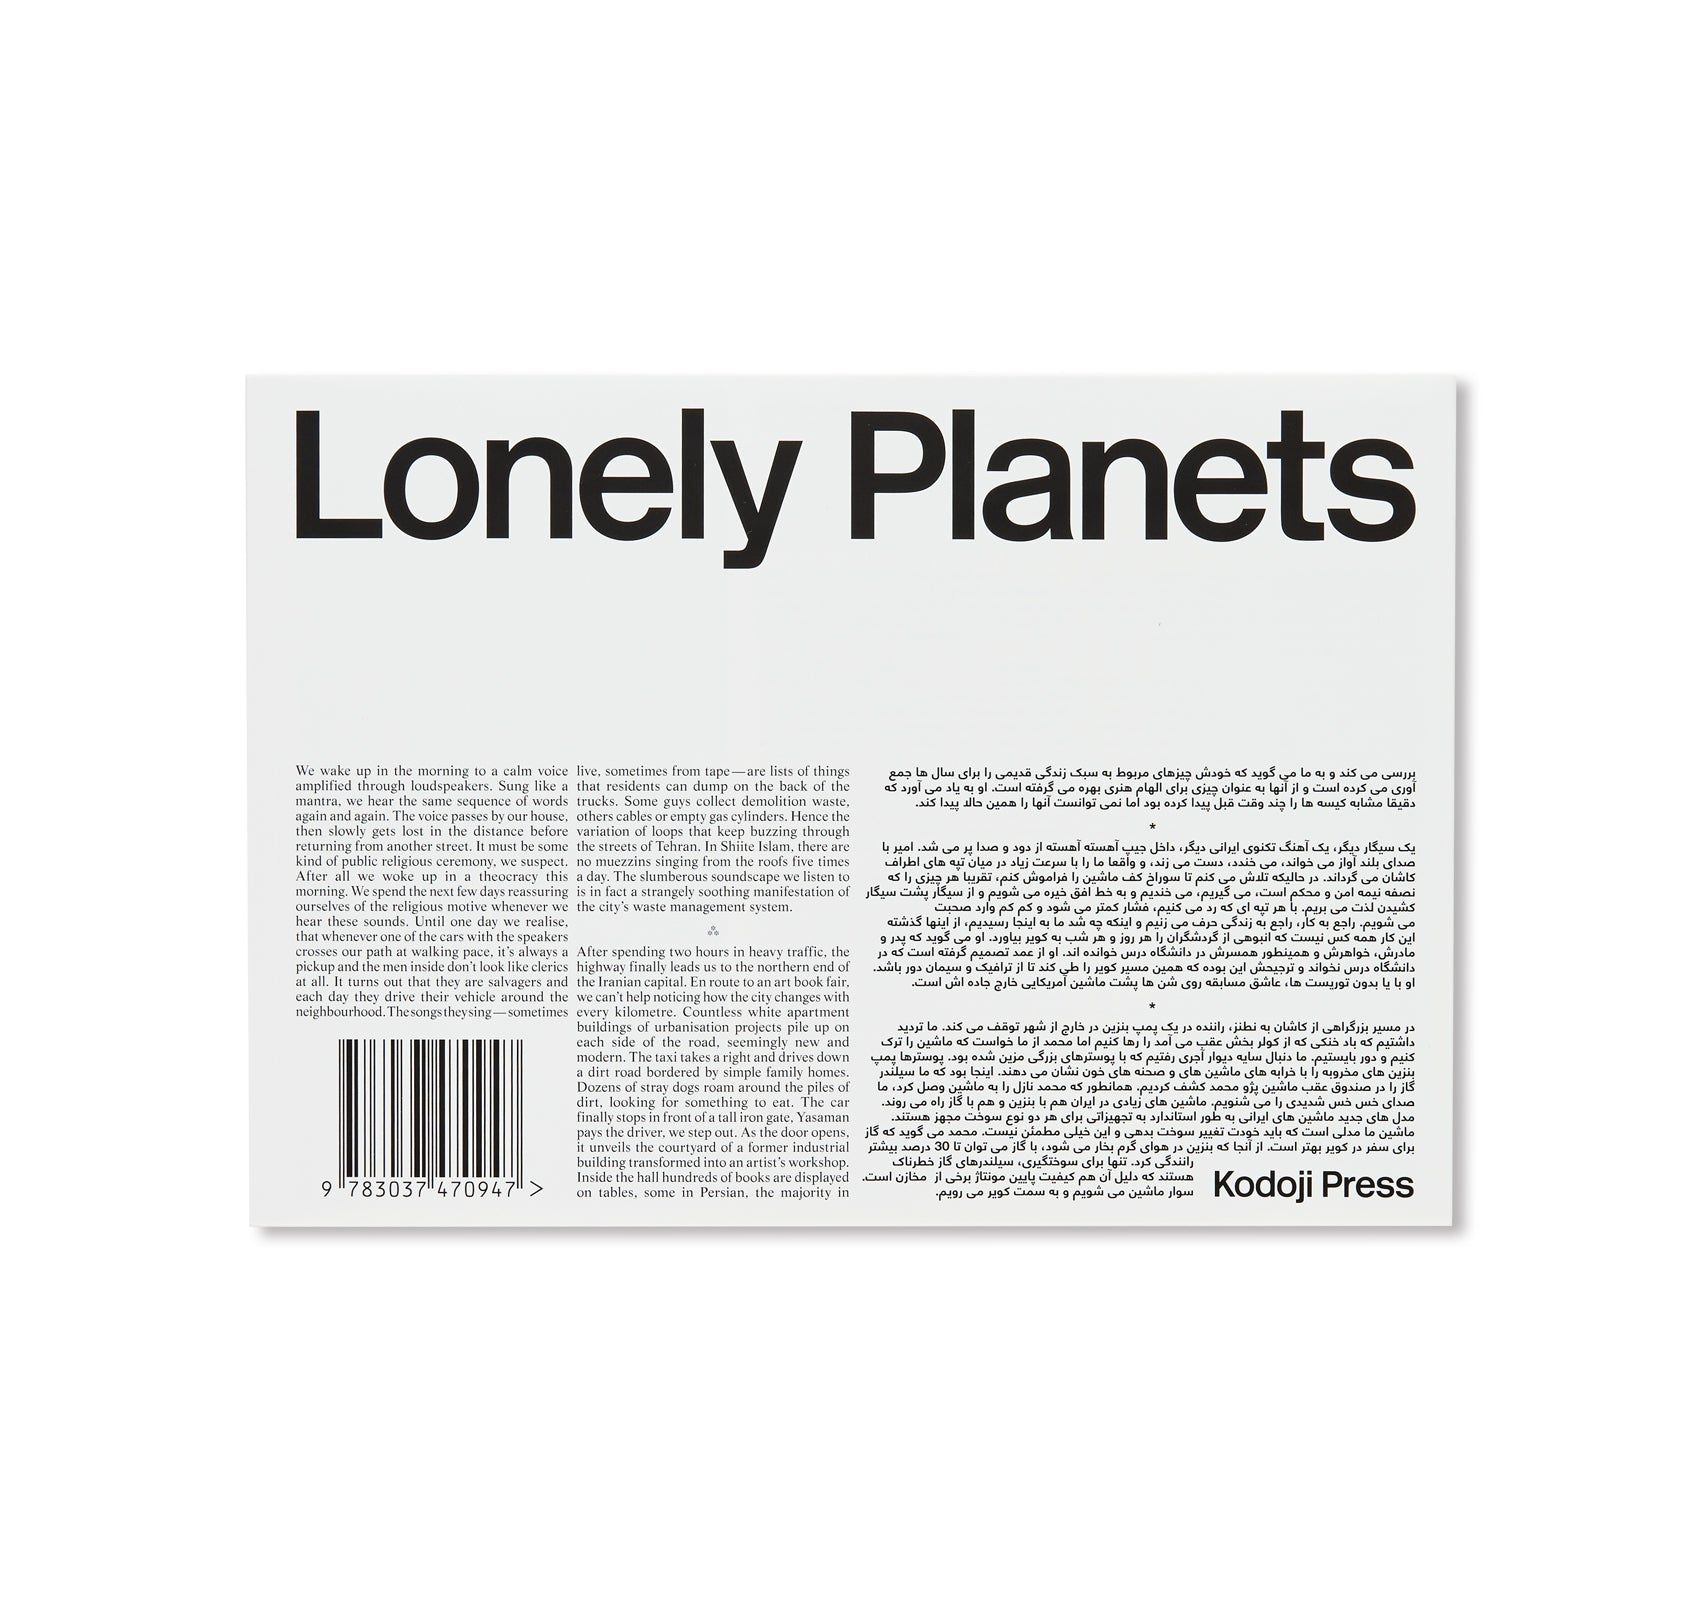 LONELY PLANETS by Atlas Studio